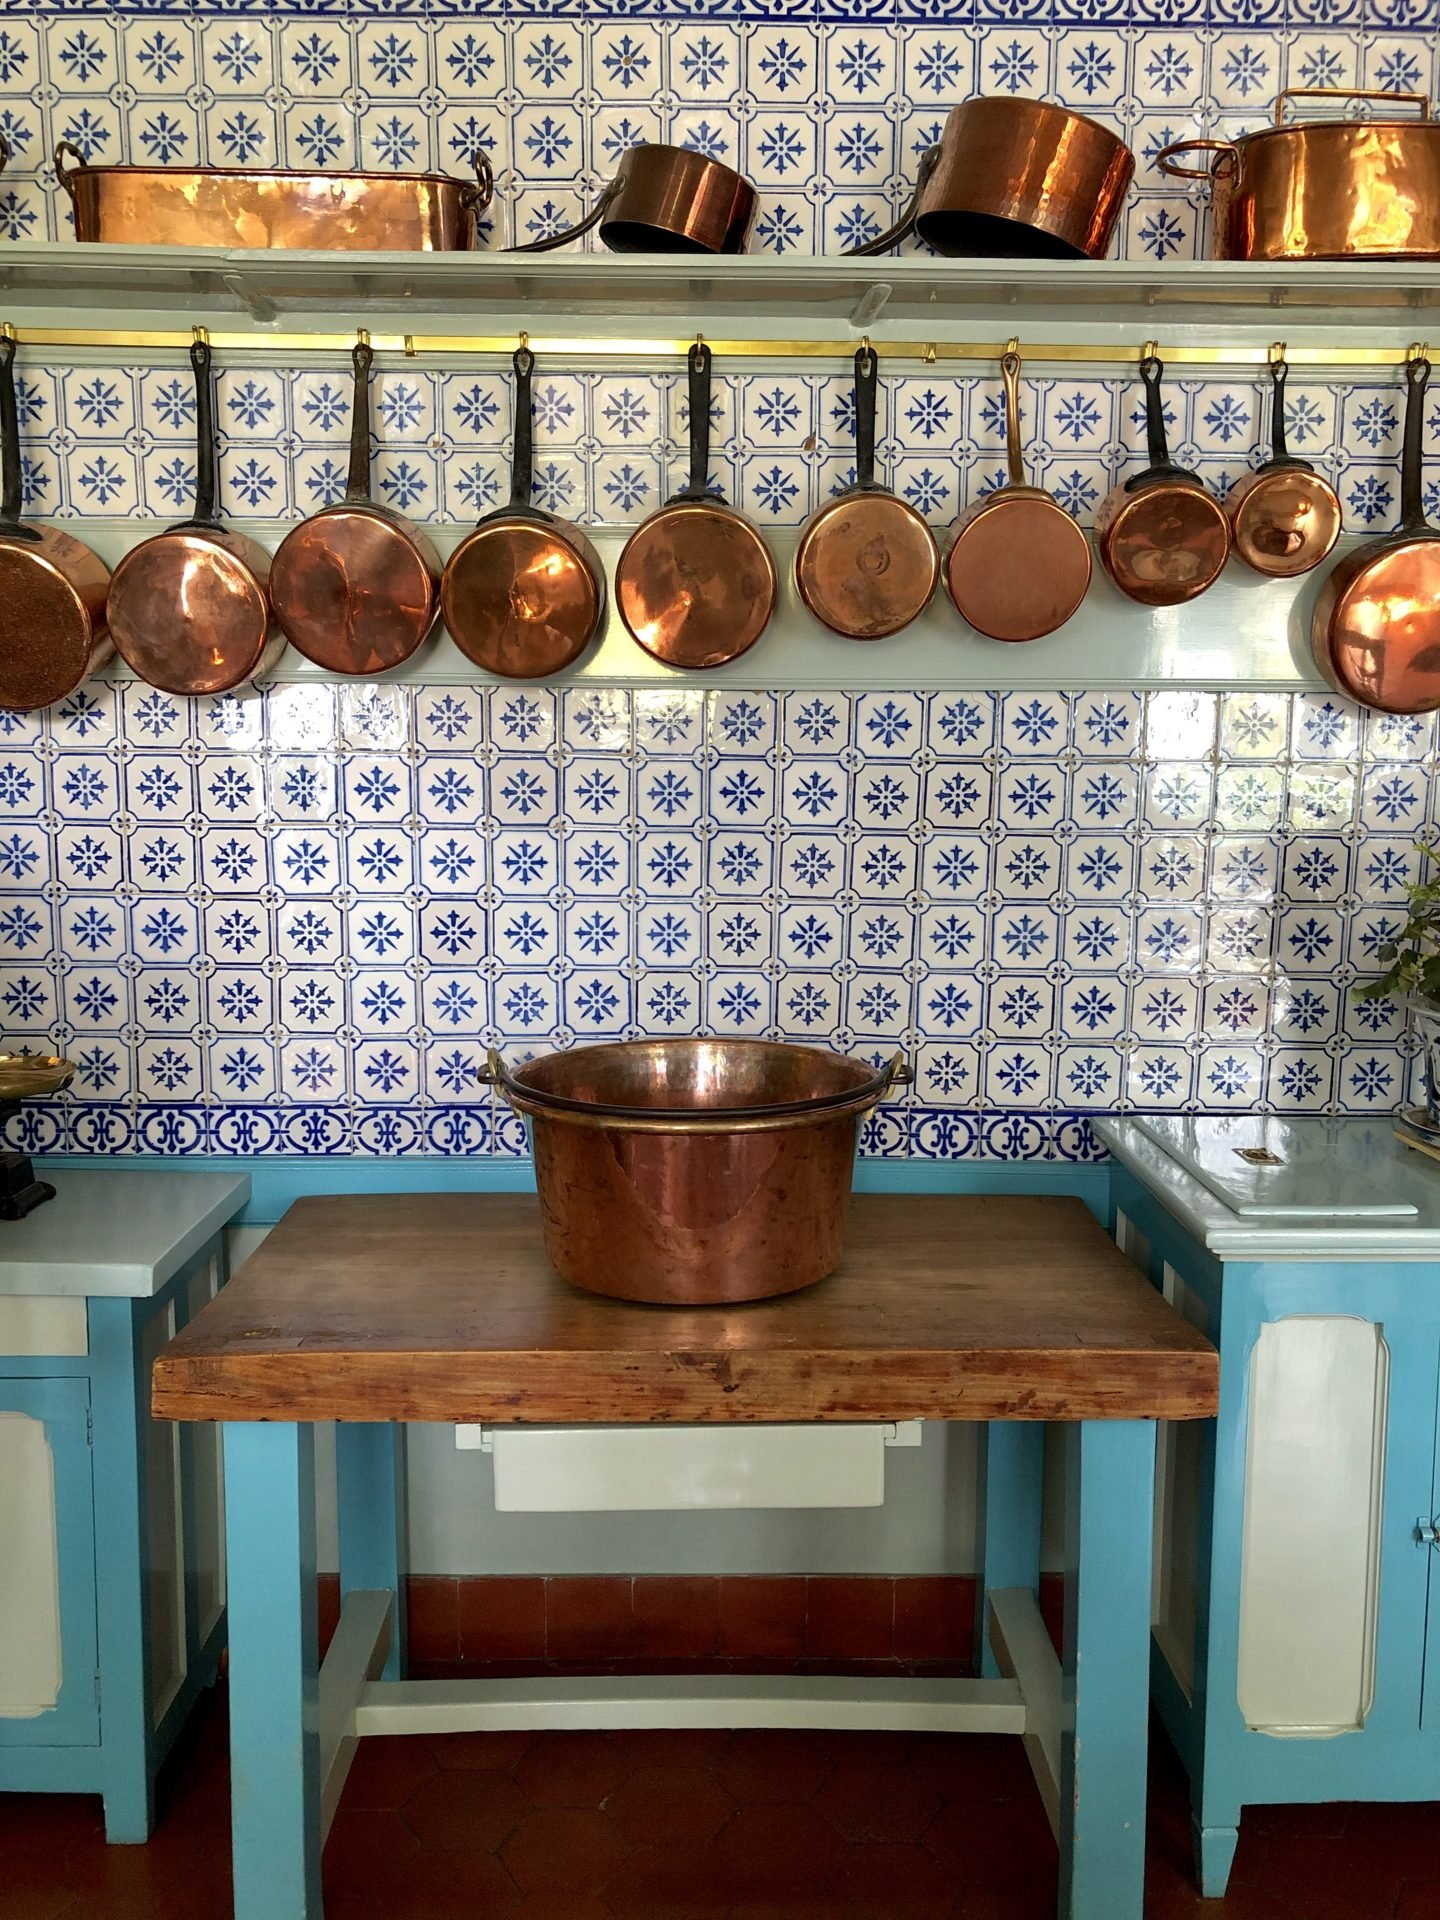 The tiles on Claude Monets kitchen walls are from Rouen and the copper pots contrast  with the blue and white tiles.